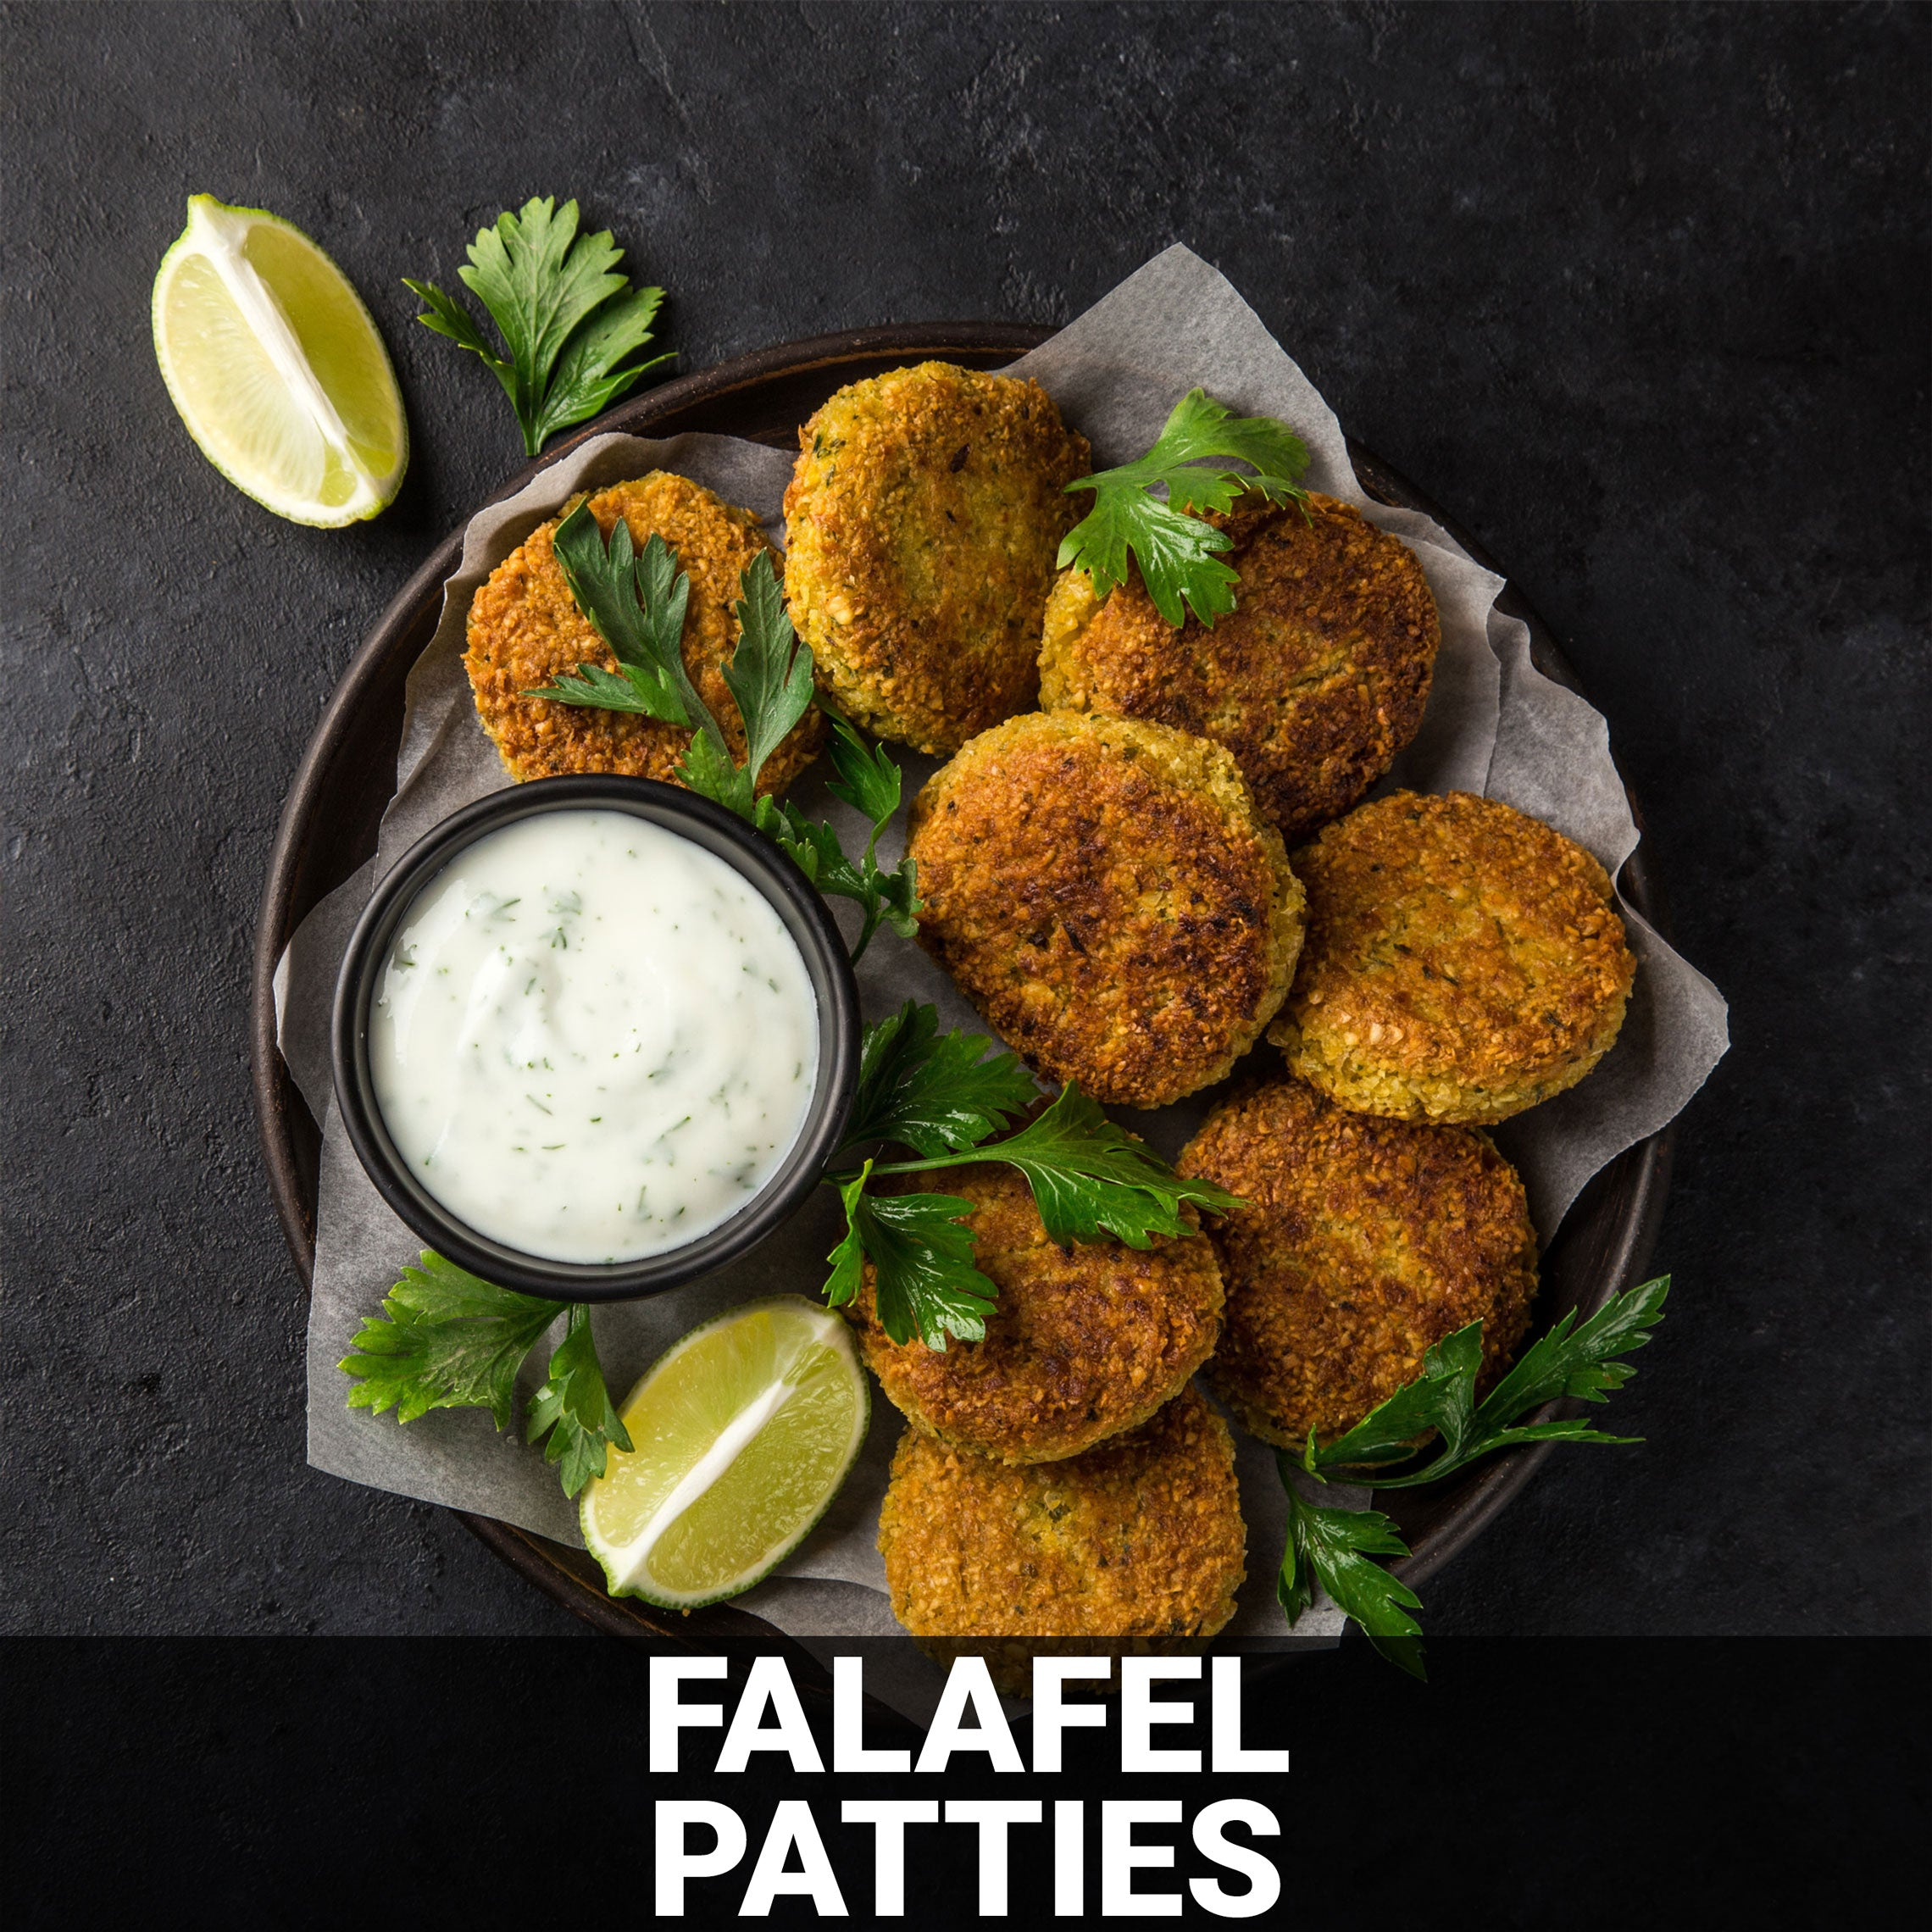 Falafel Patties Recipe - Foods Alive